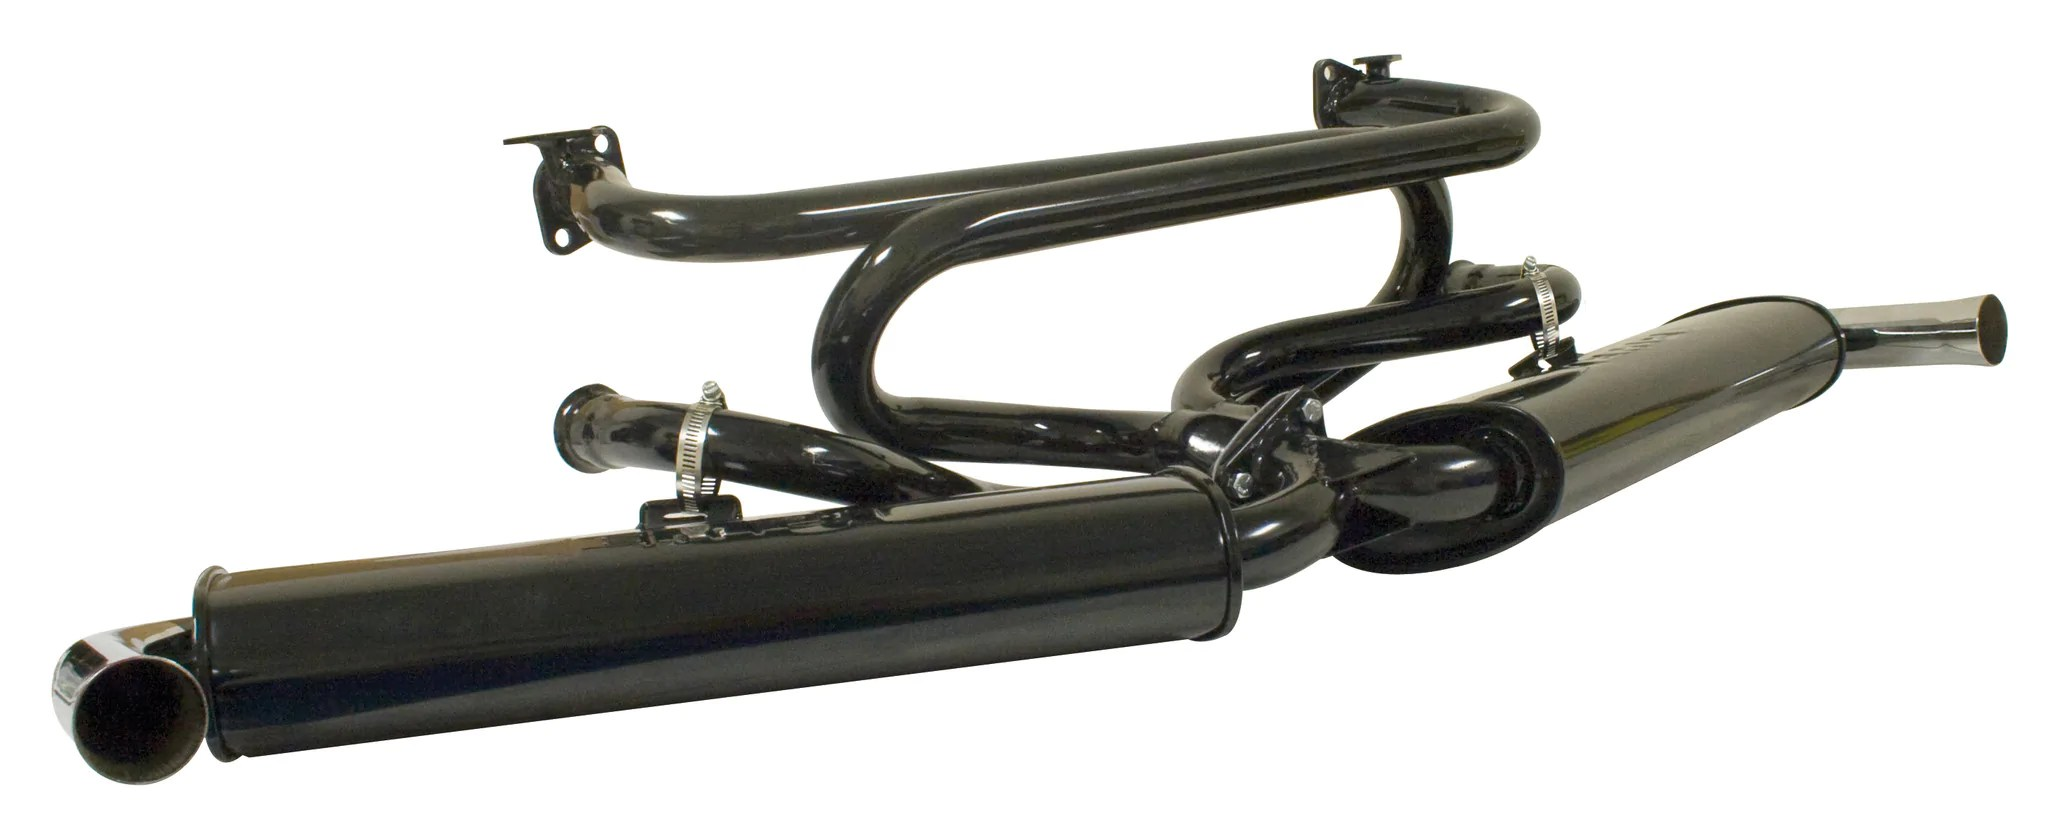 vw dual quiet pack exhaust with extractor empi 3121 ships free dubparts com [ 2048 x 840 Pixel ]